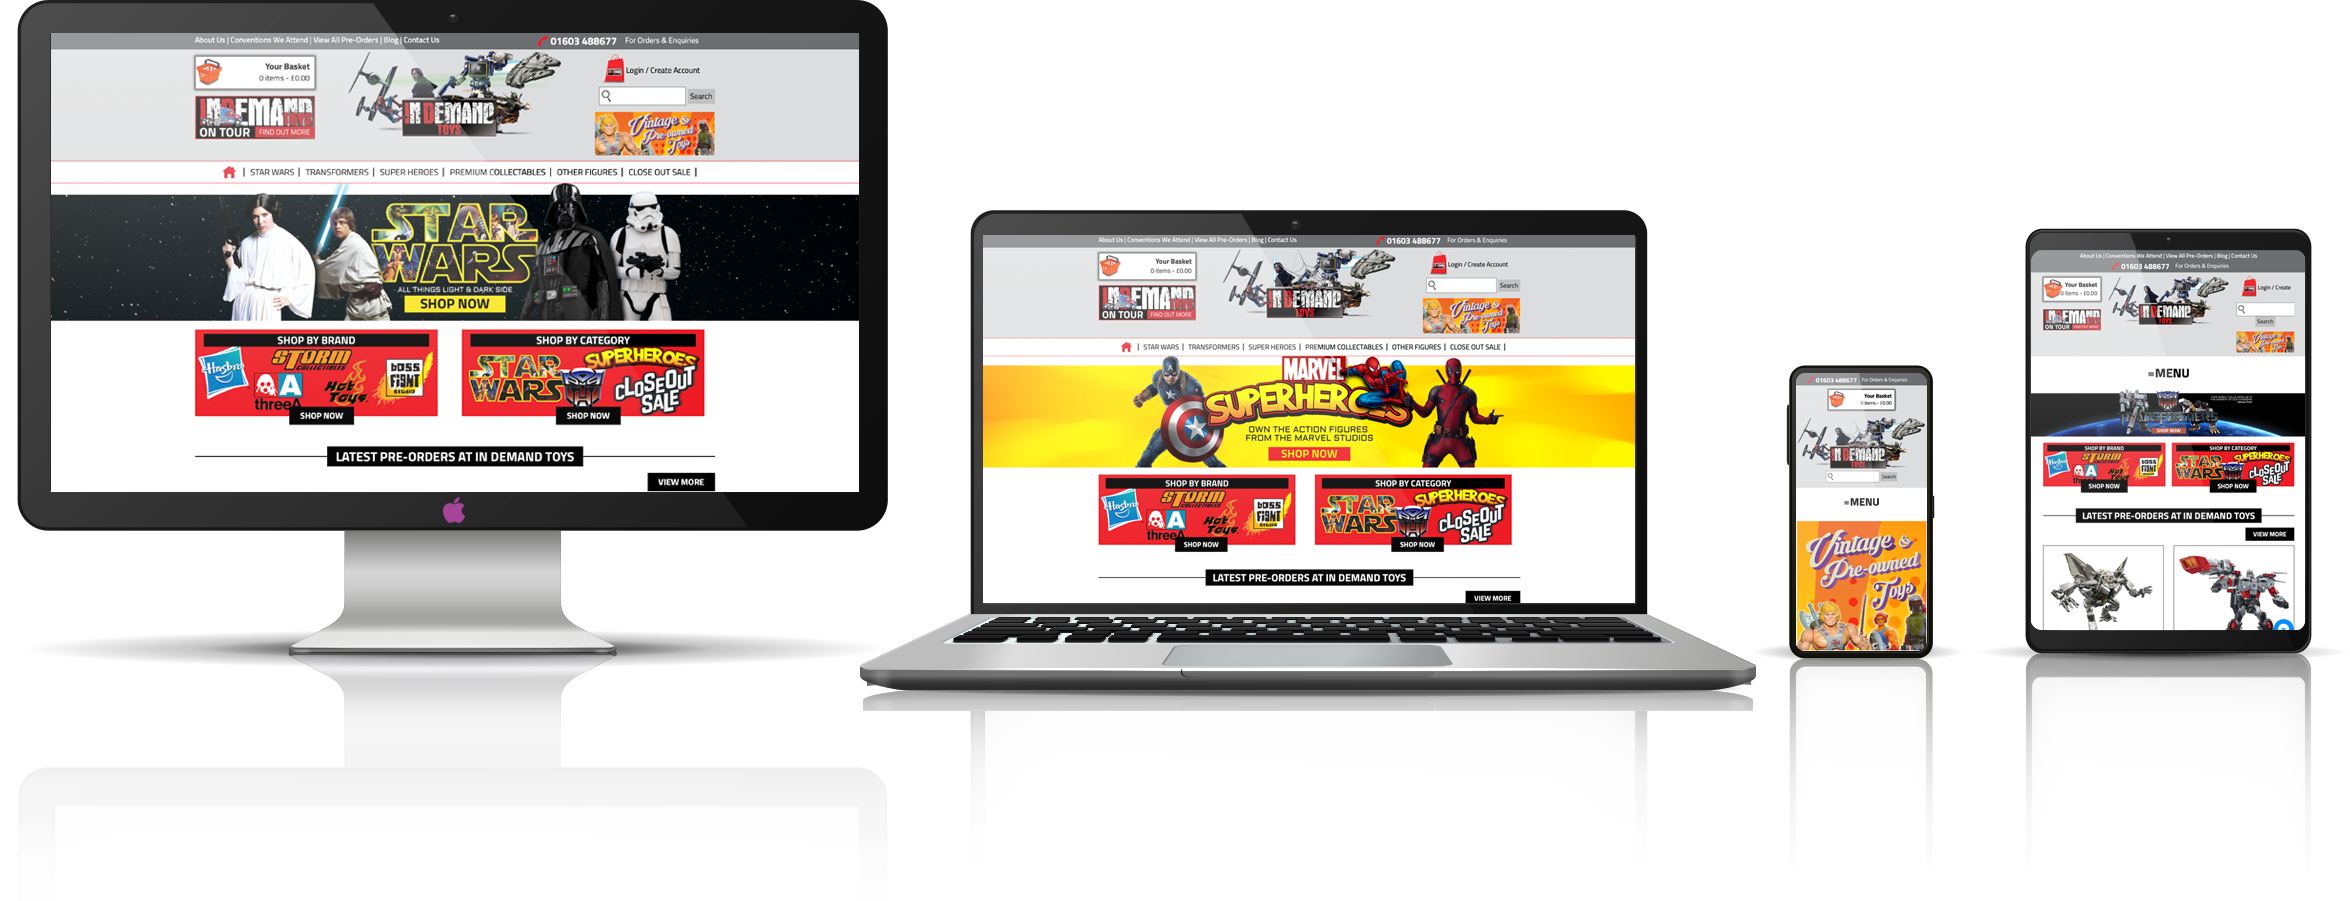 The In Demand Toys fully responsive mock-up images showing desktop, laptop, tablet, and mobile phone devices.